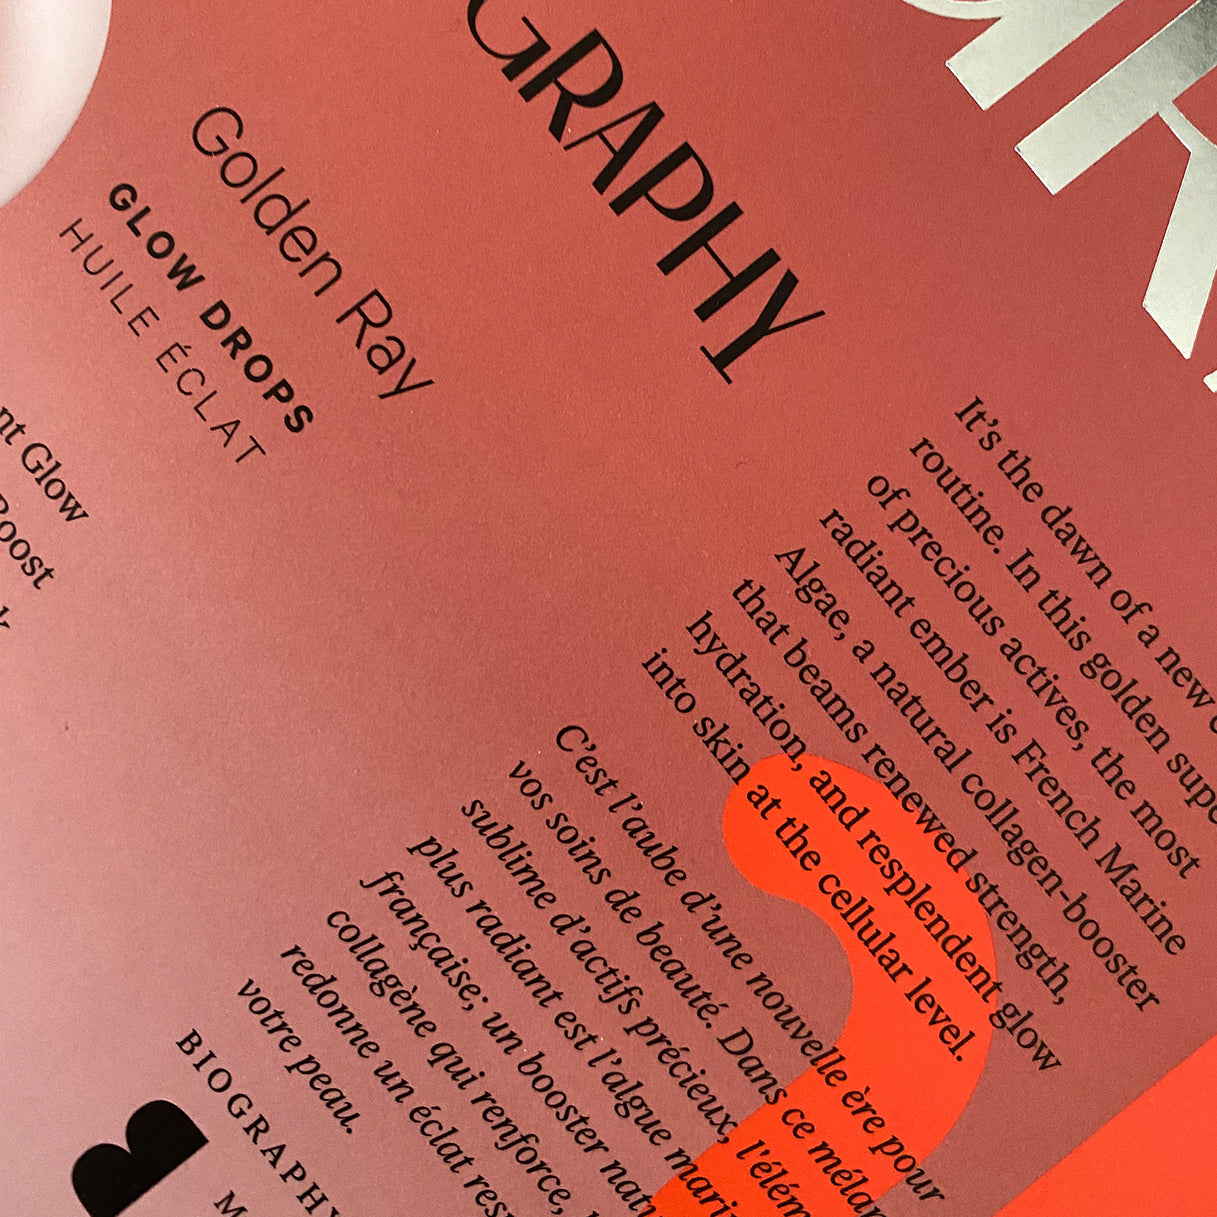 Biography design approach